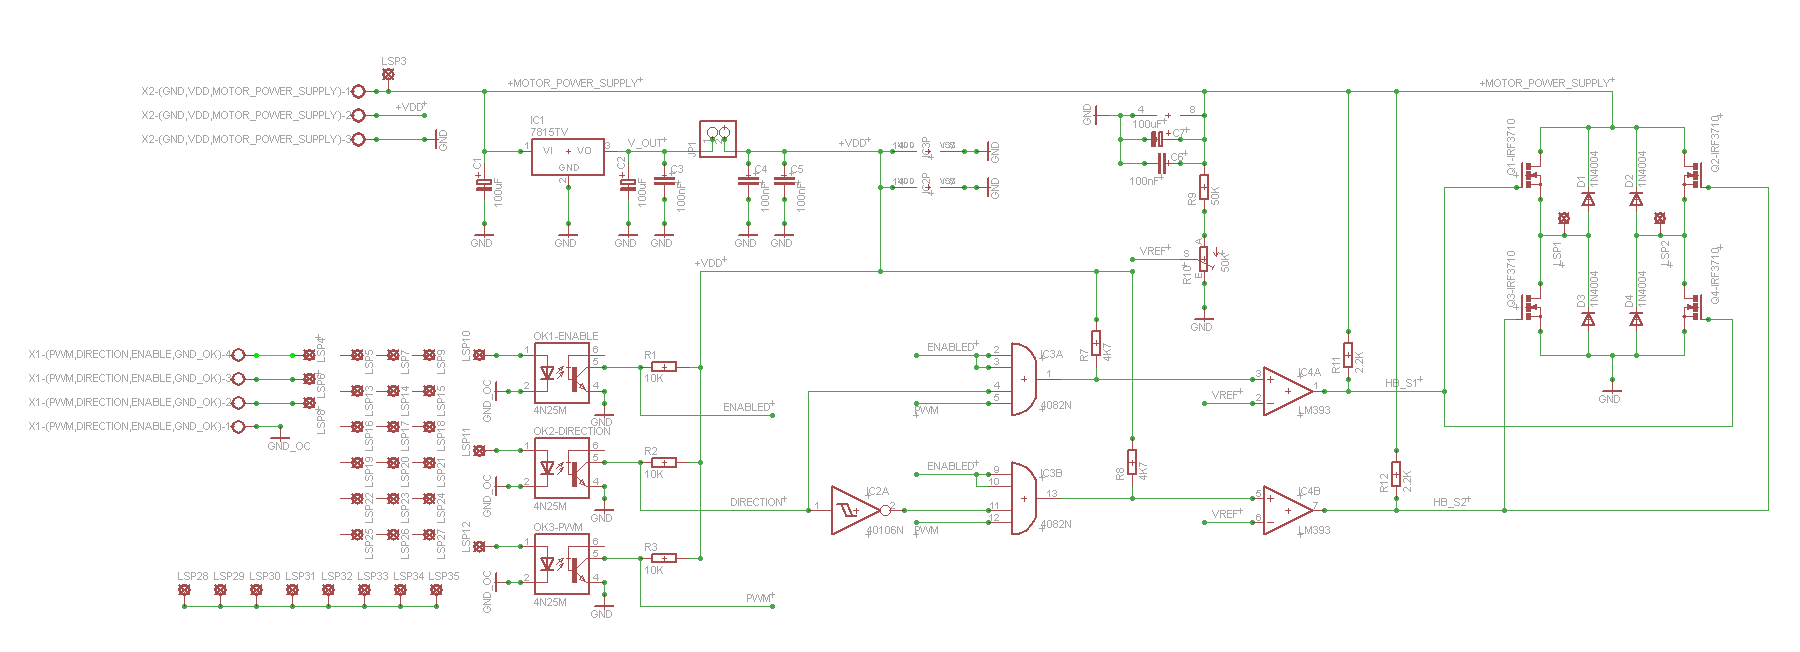 Zilsel Invent Voltage Controlled Pwm Control Signal 2 Sch Pcb Direction 1 Enable